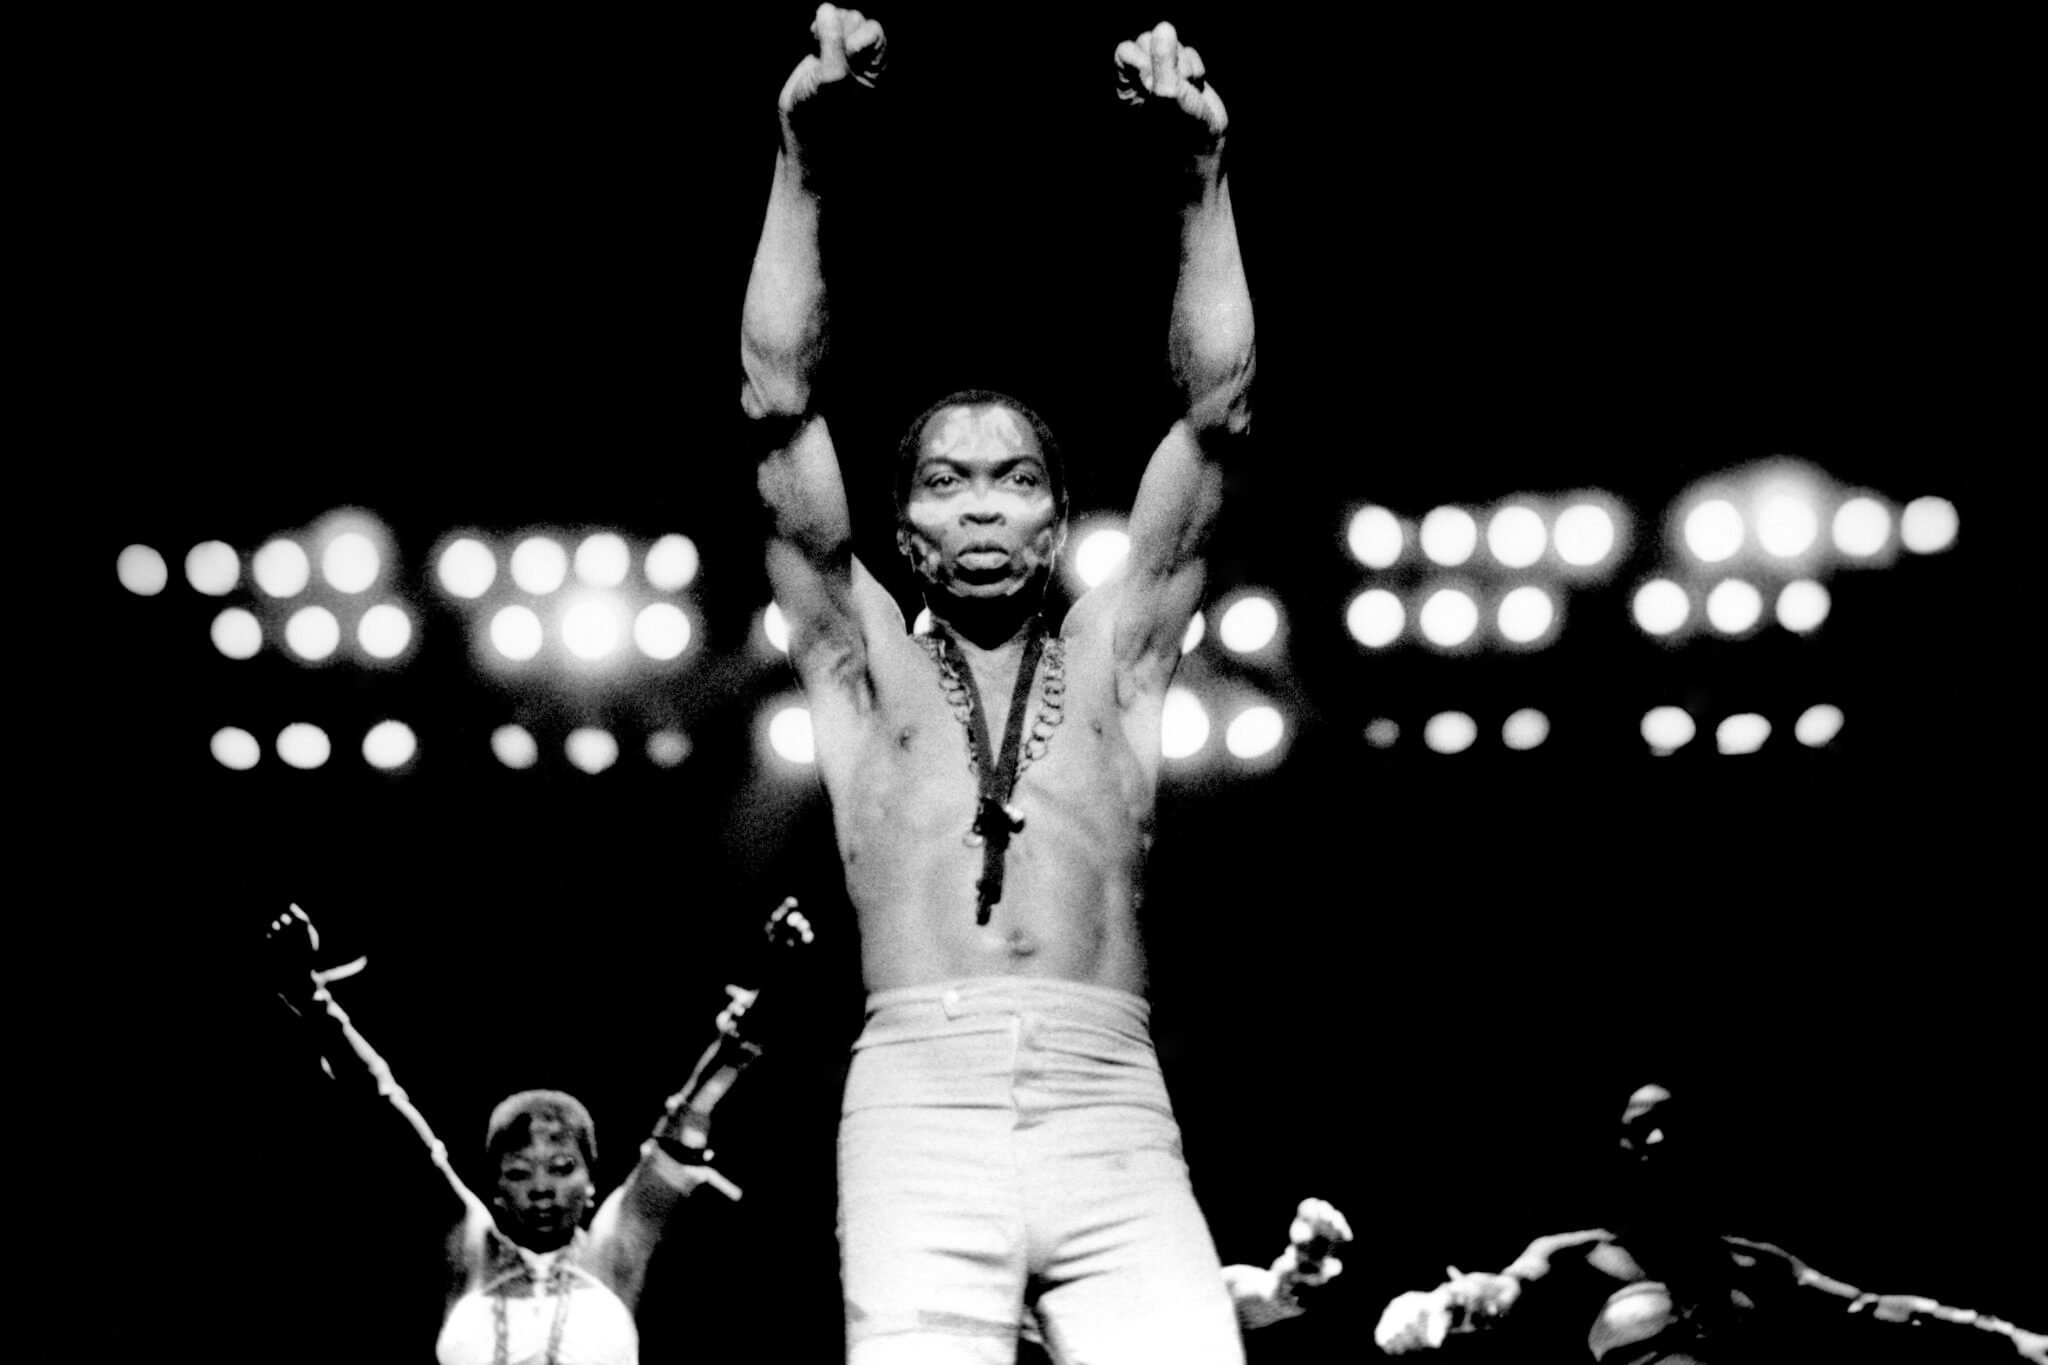 Fela at Orchestra Hall in Detroit  - Few Songs To kickstart Your Afrobeat Genre Addiction